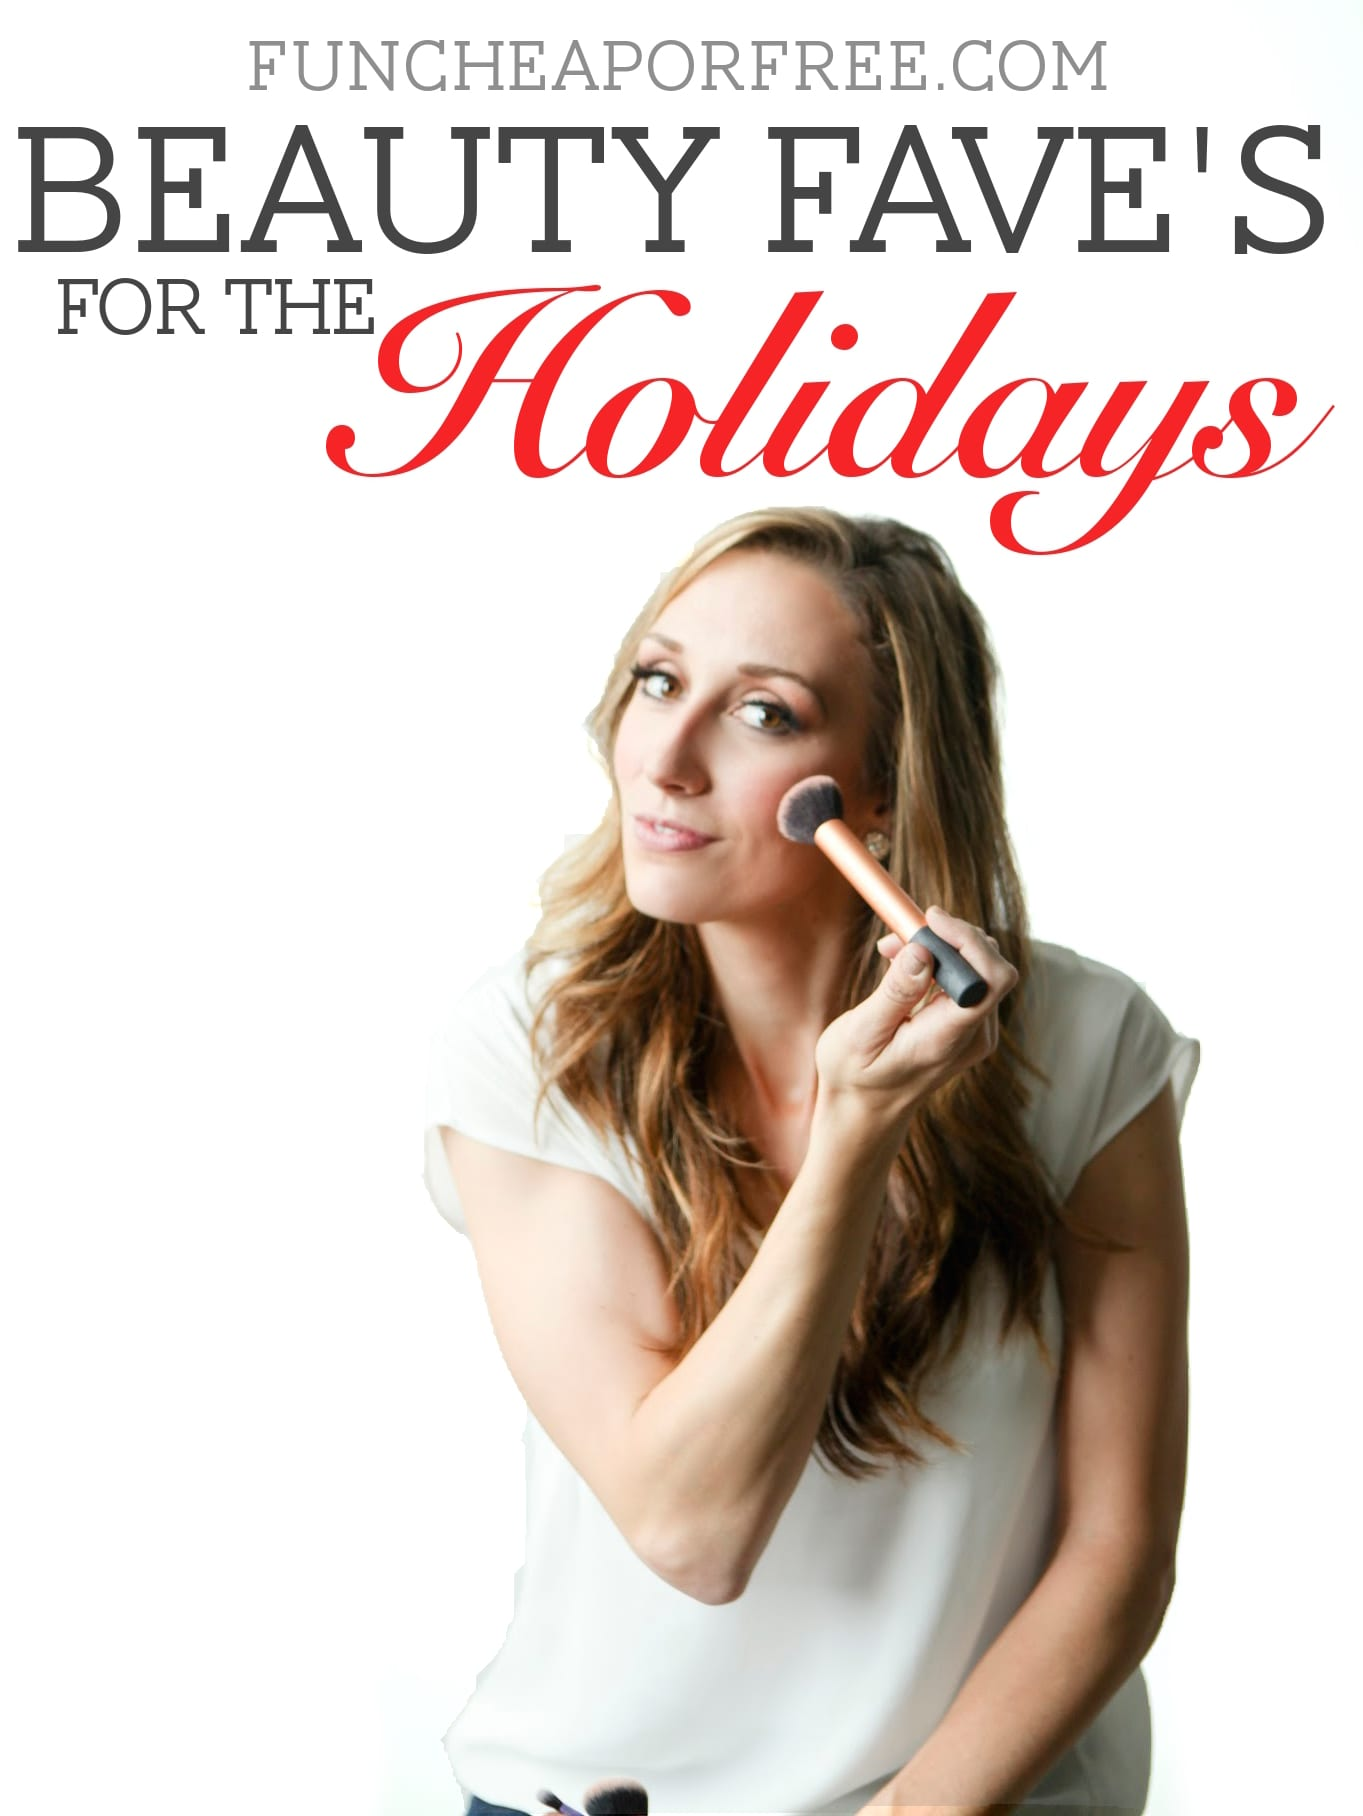 My beauty faves for the holidays! From FunCheapOrFree.com